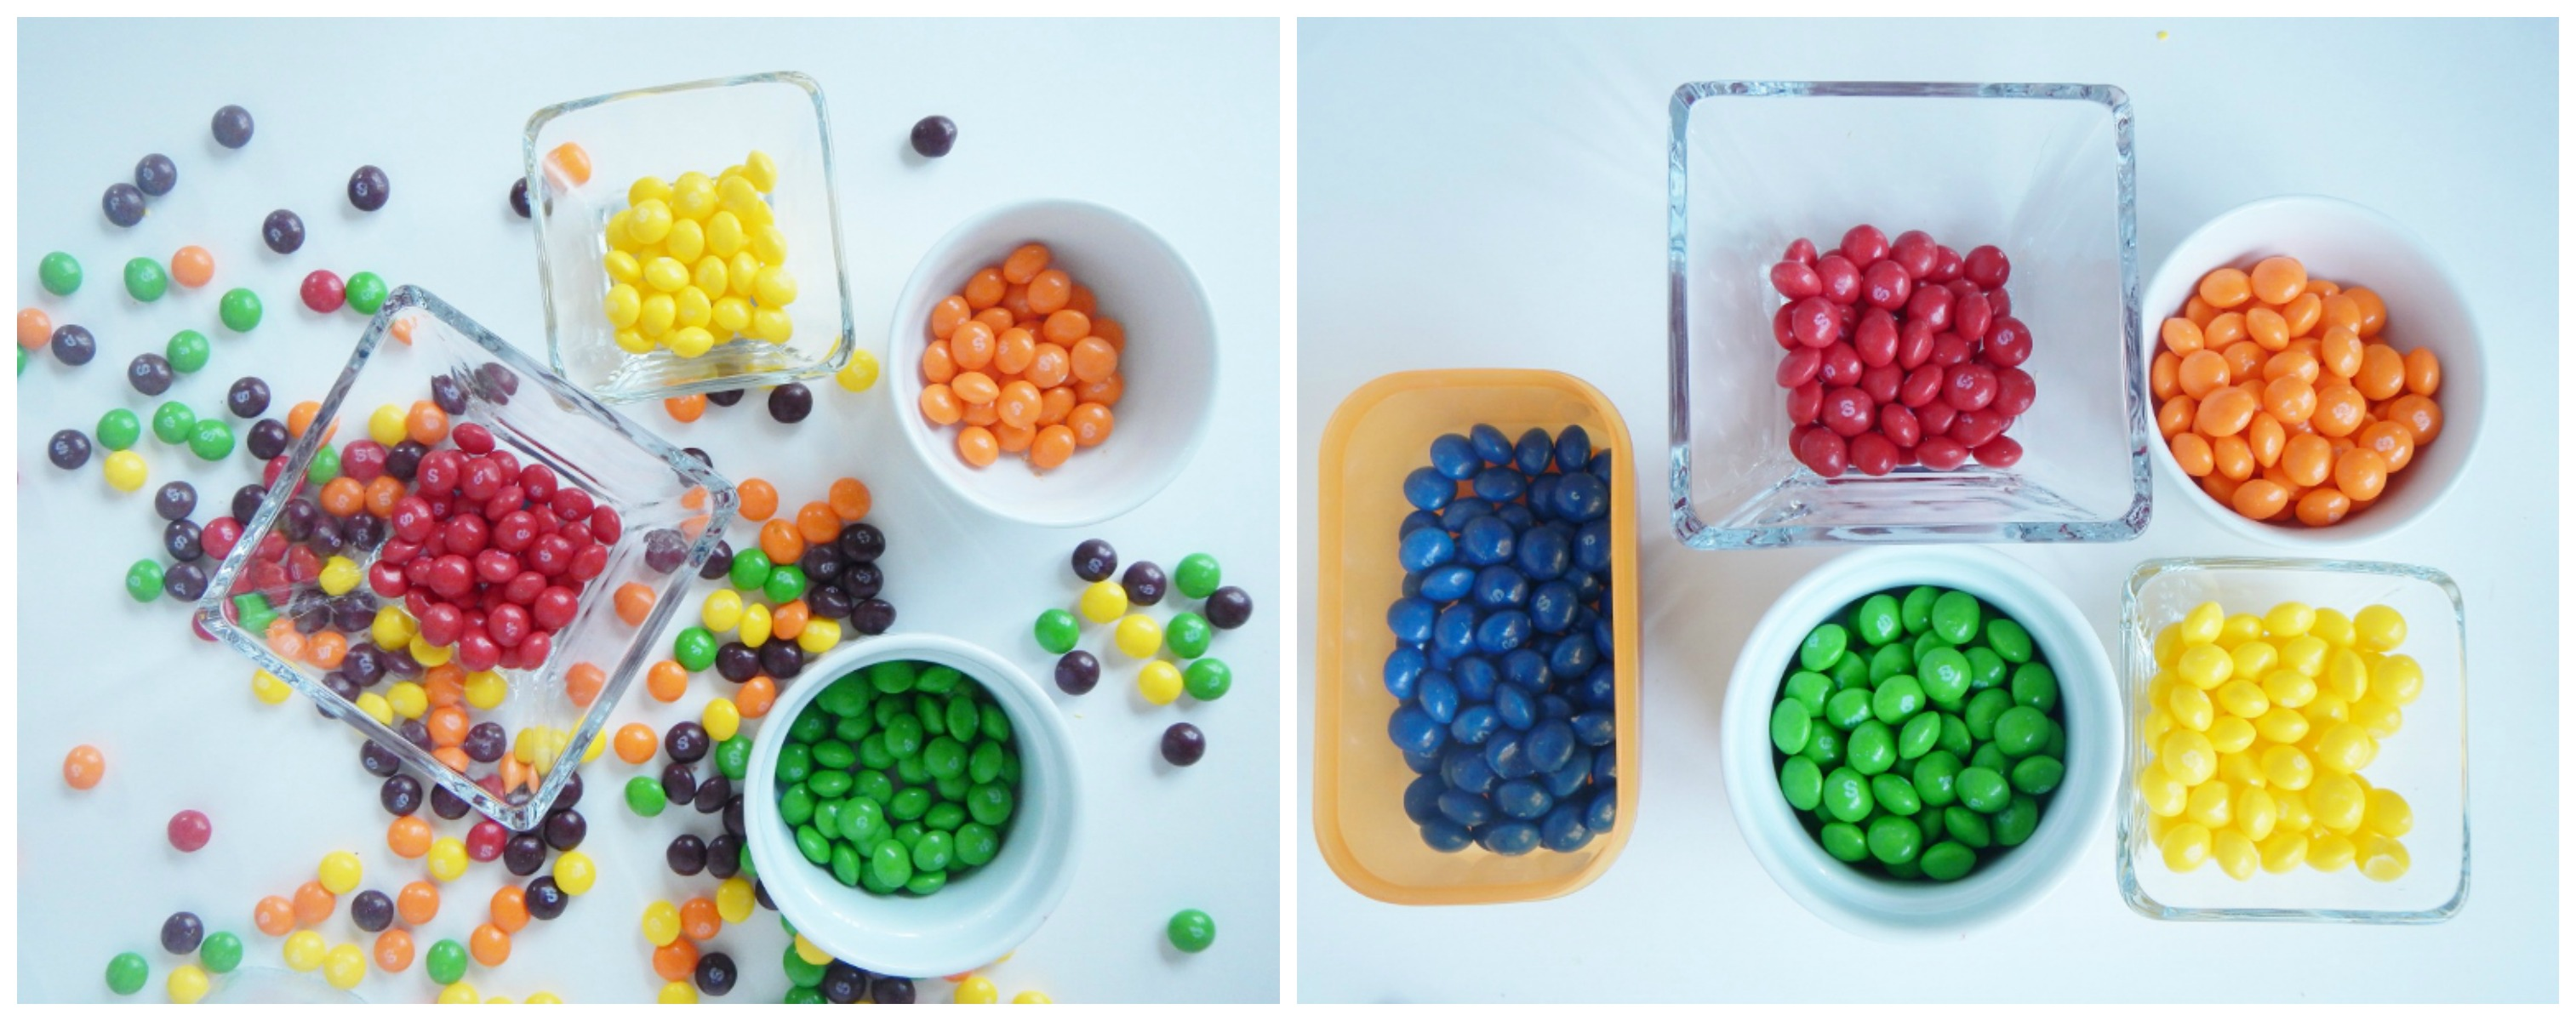 How To Make Skittles Infused Vodka